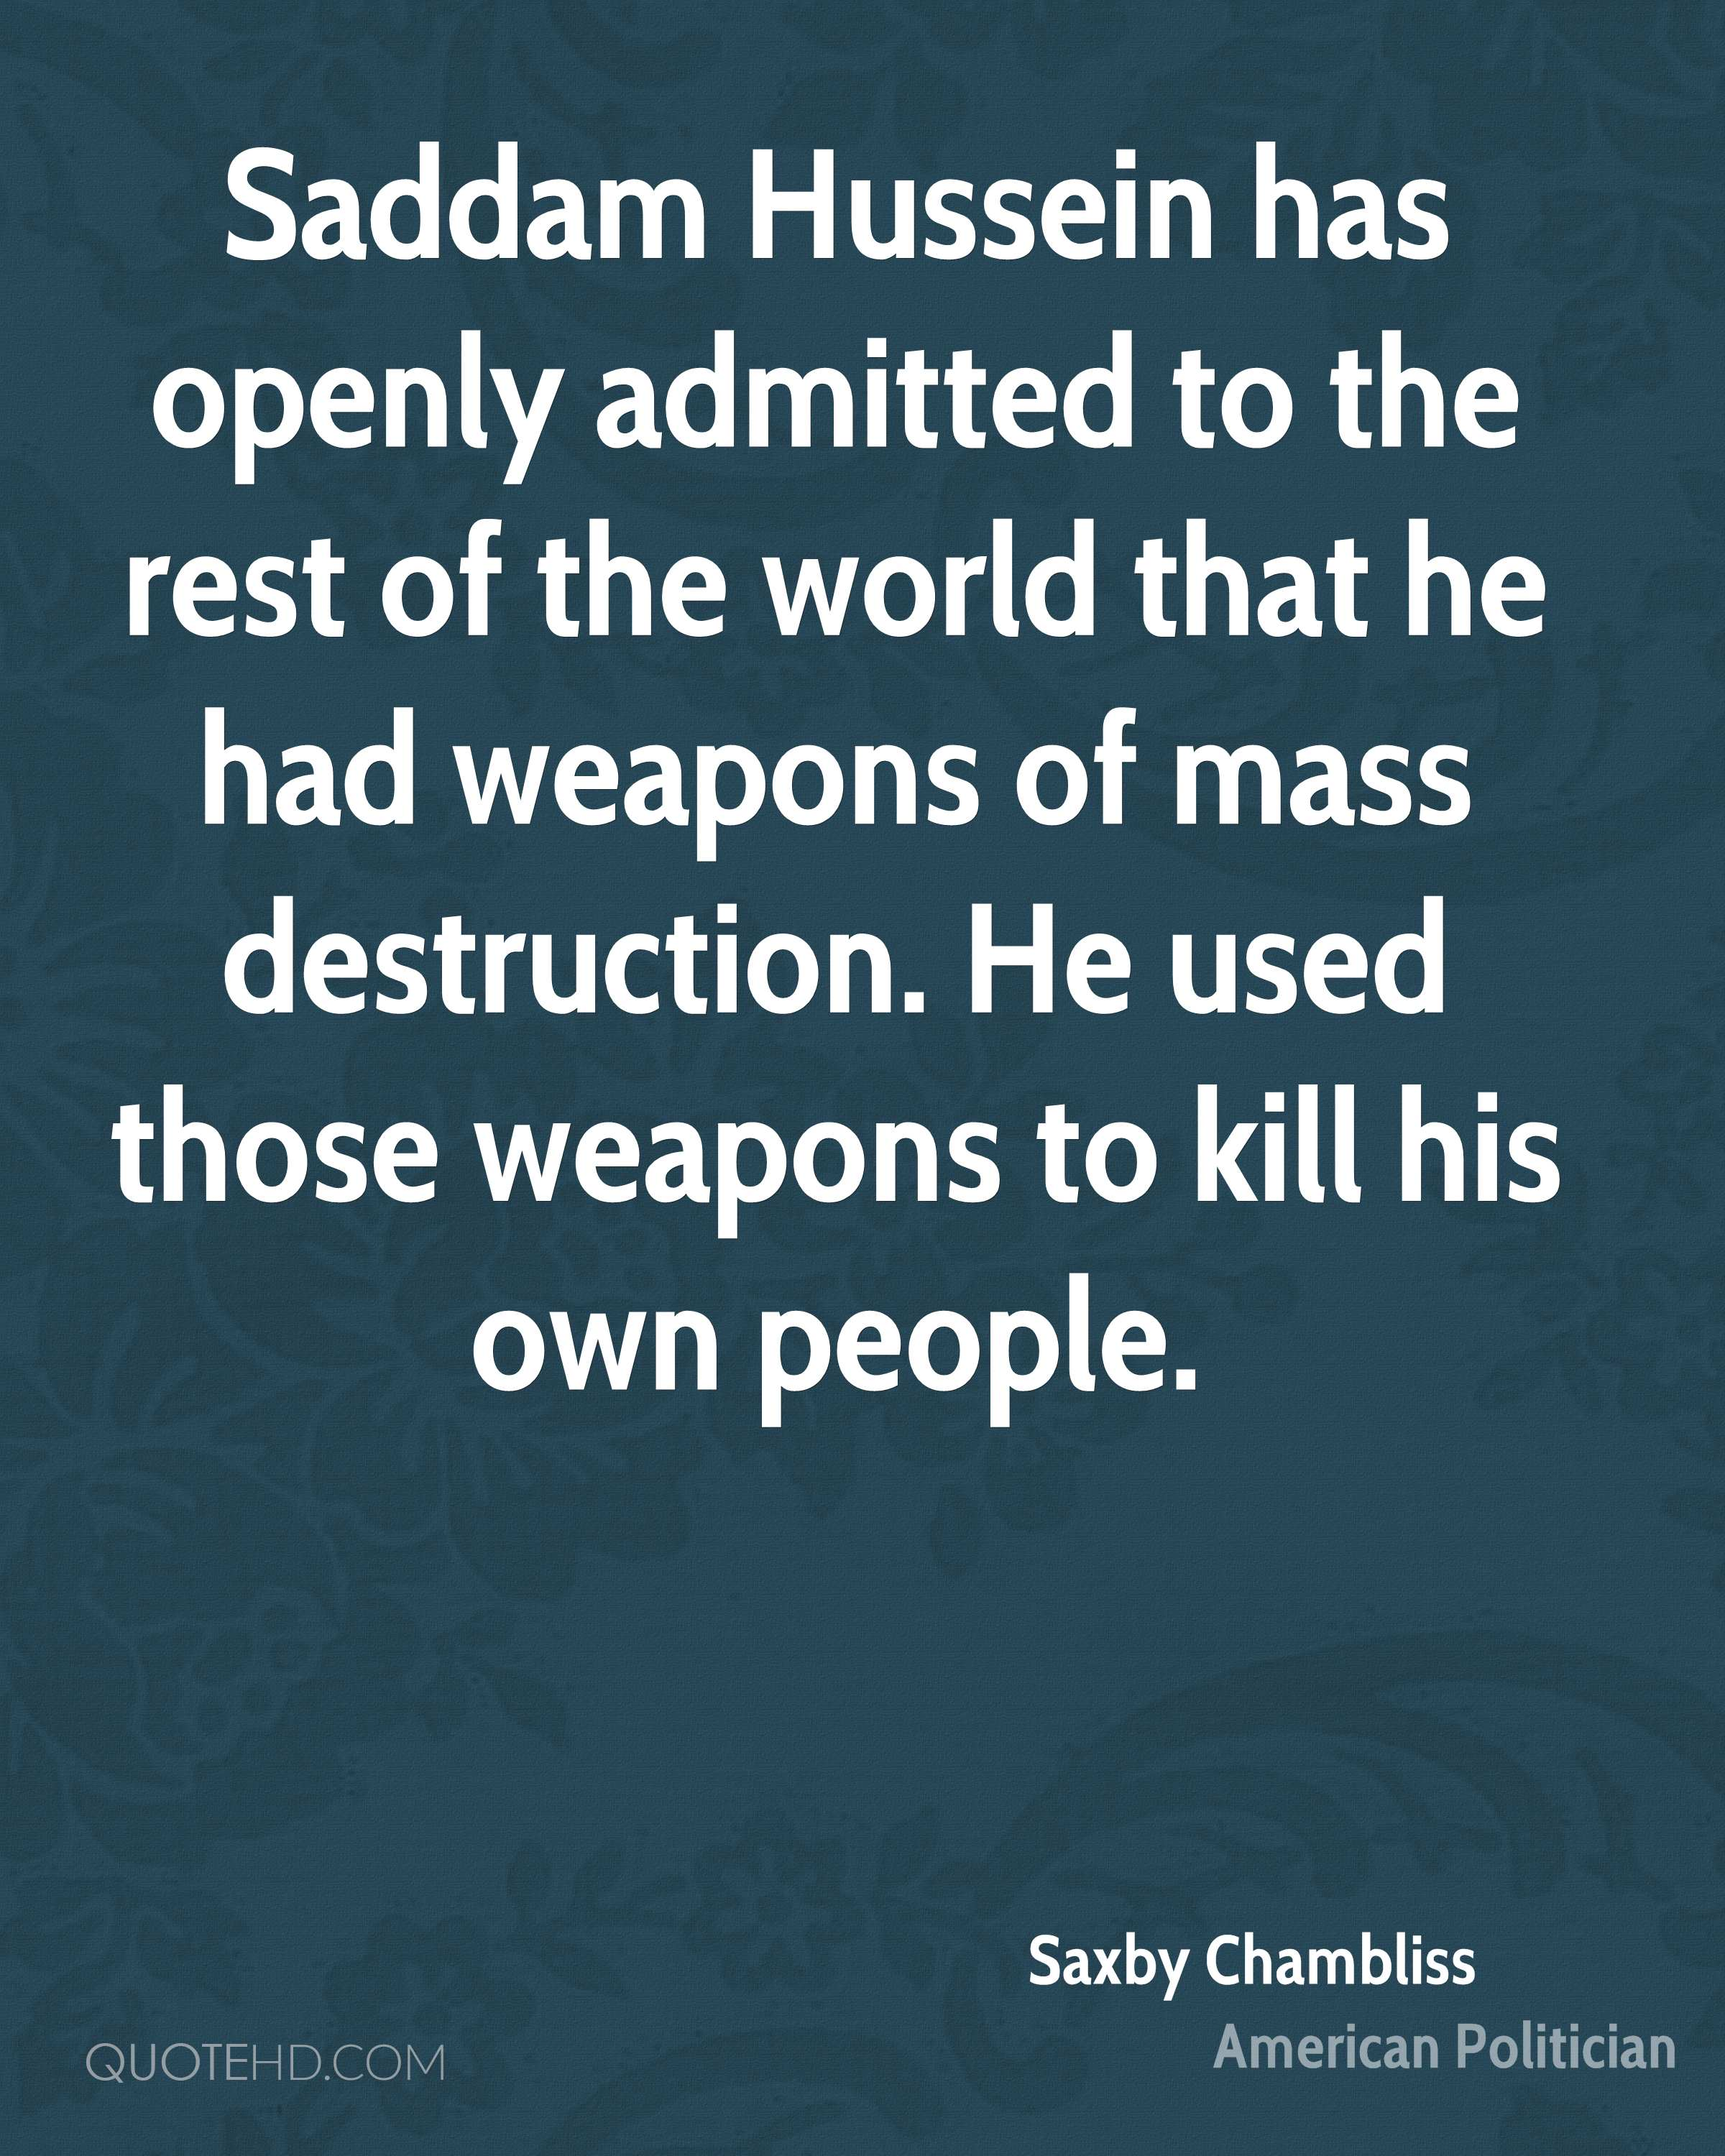 Saddam Hussein has openly admitted to the rest of the world that he had weapons of mass destruction. He used those weapons to kill his own people.